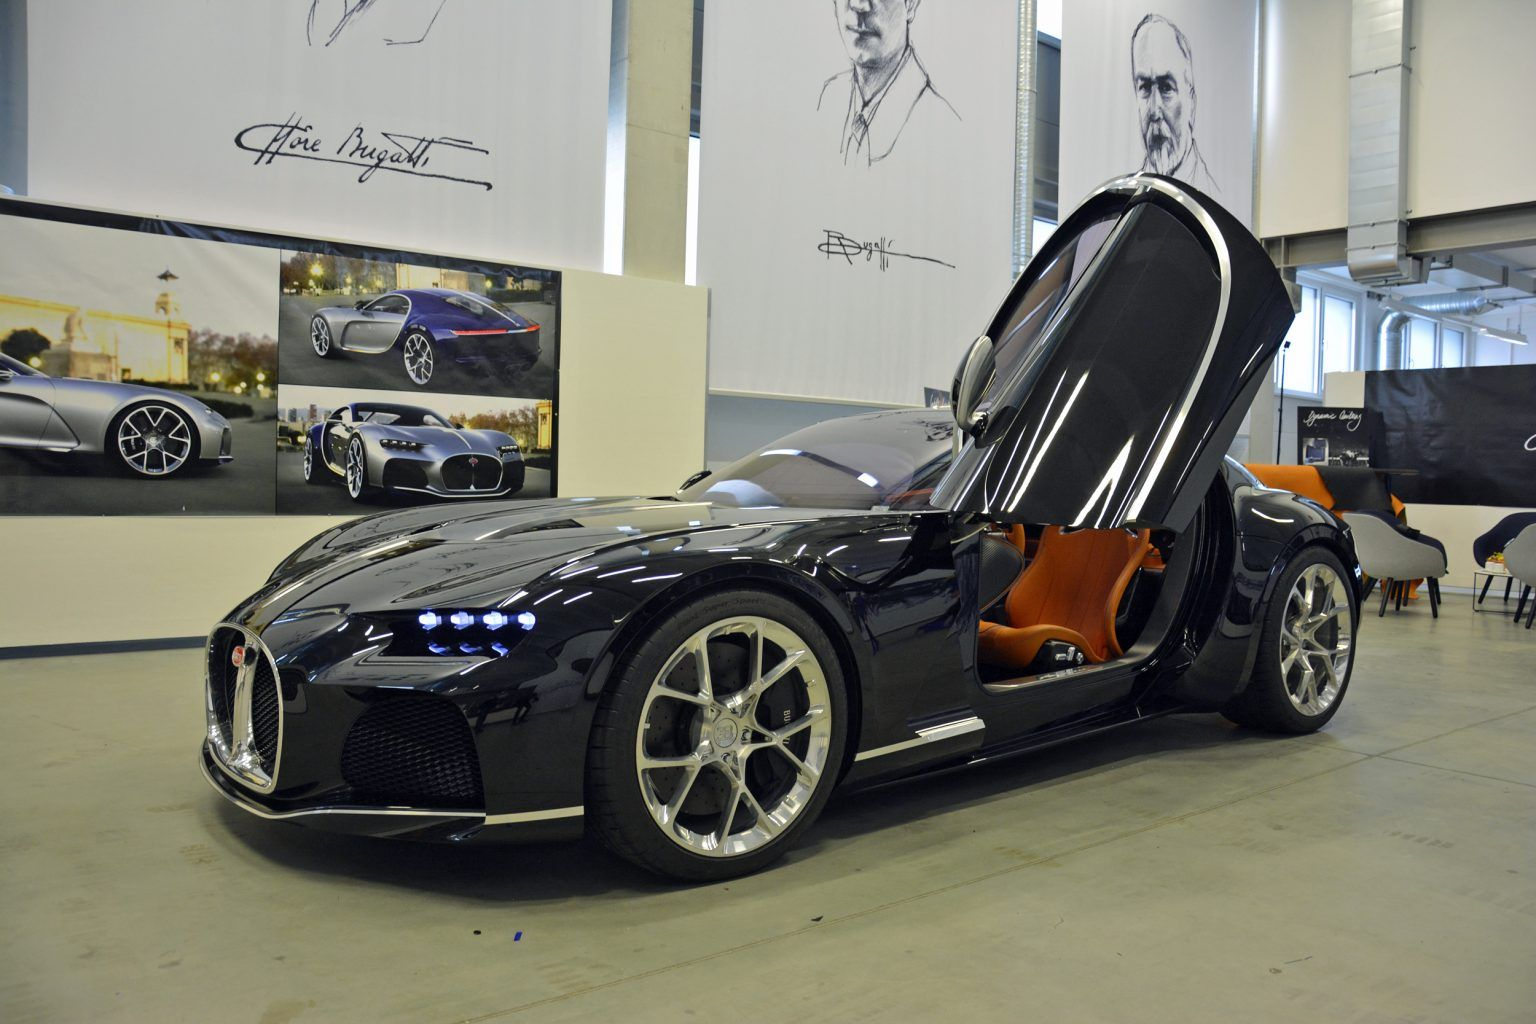 Incredible Never-Seen-Before Bugatti Creations Uncovered